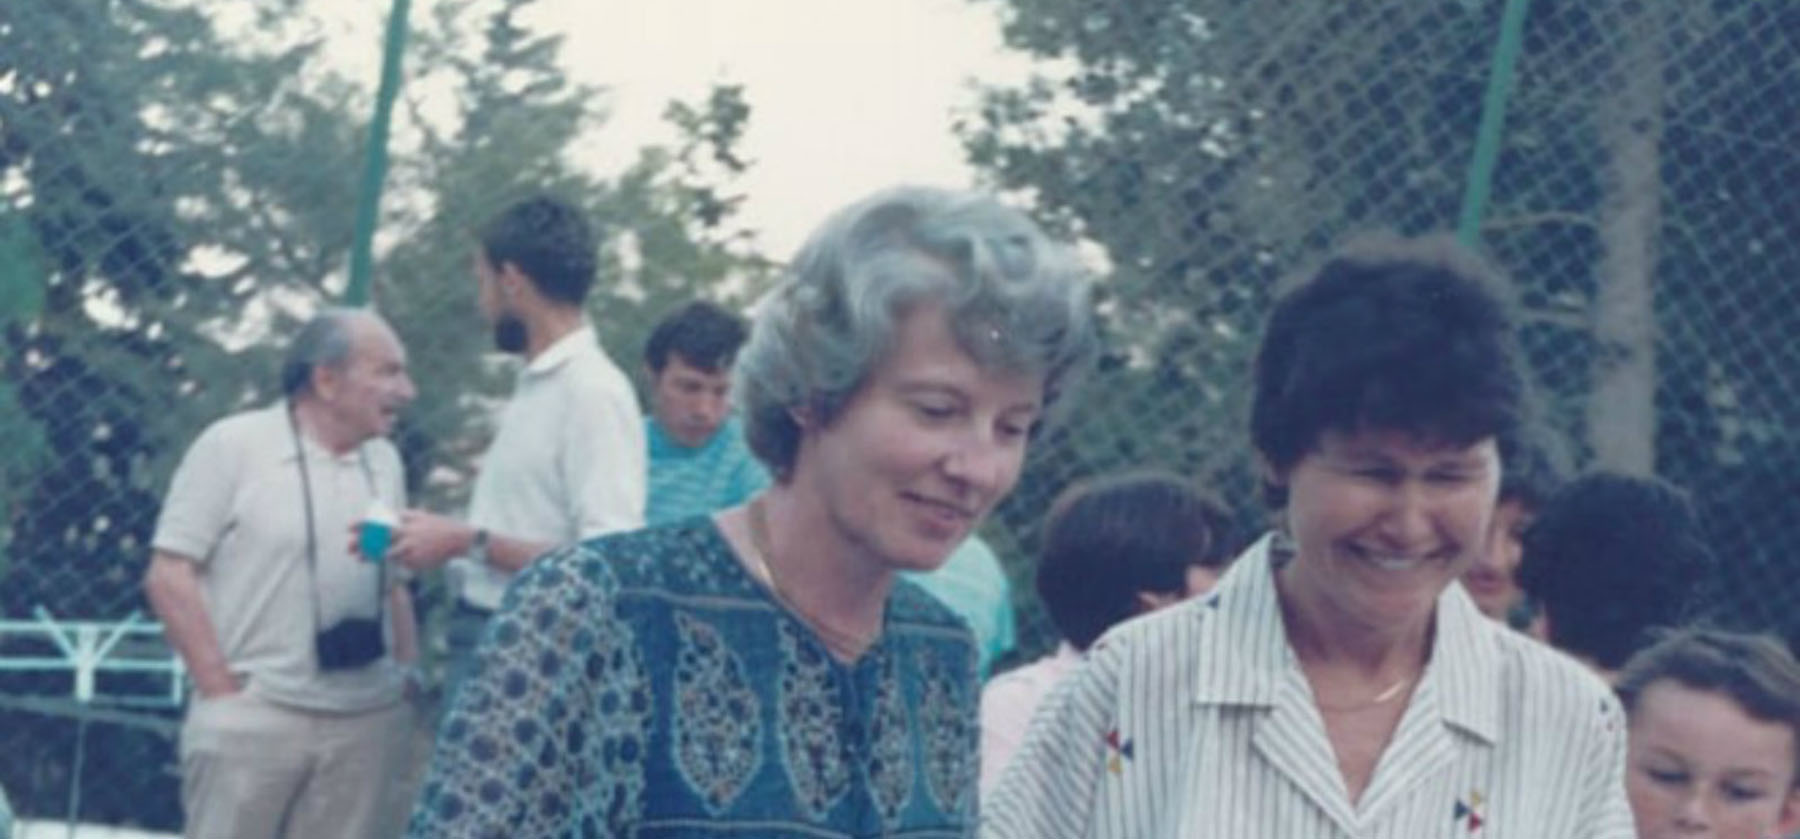 Margery Balding – A Personal Remembrance